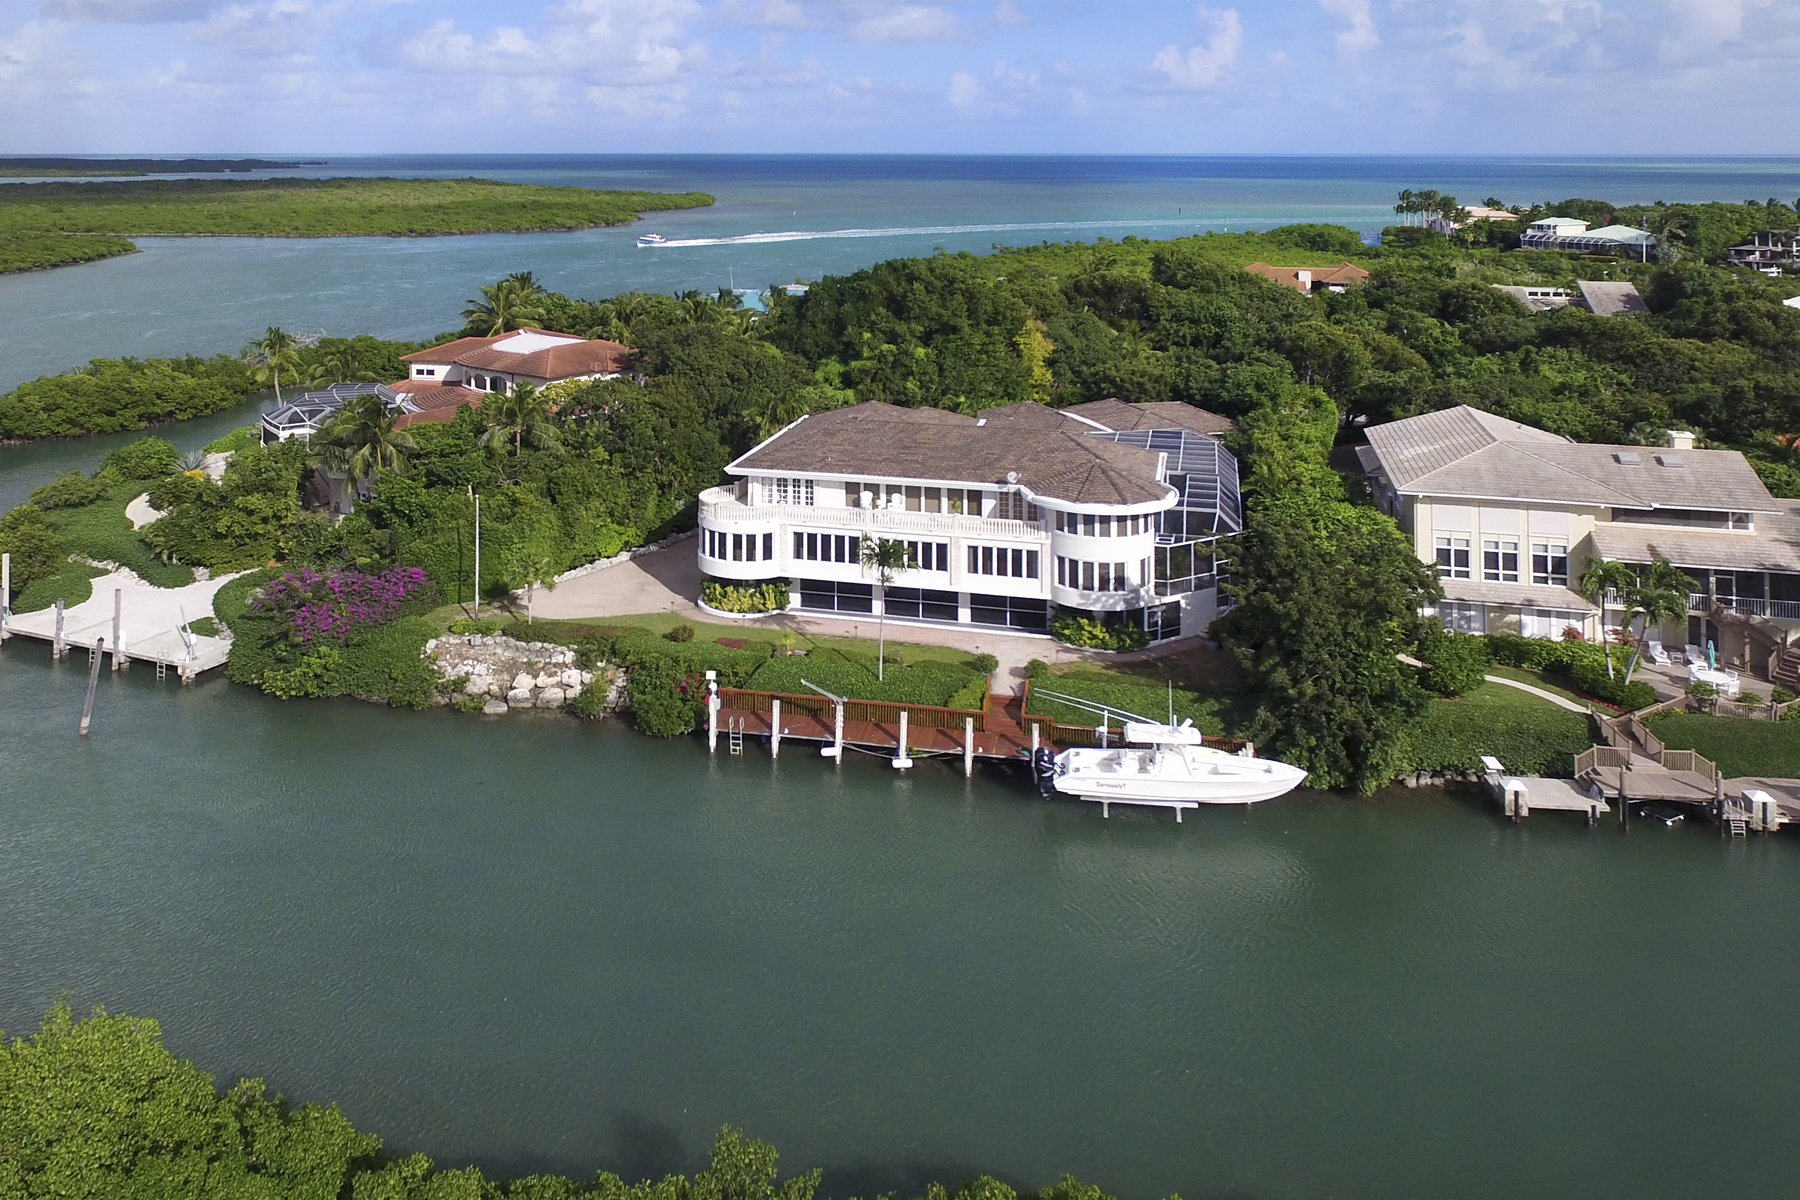 Moradia para Venda às Exceptional Family Compound at Ocean Reef 34 Cardinal Lane Ocean Reef Community, Key Largo, Florida, 33037 Estados Unidos